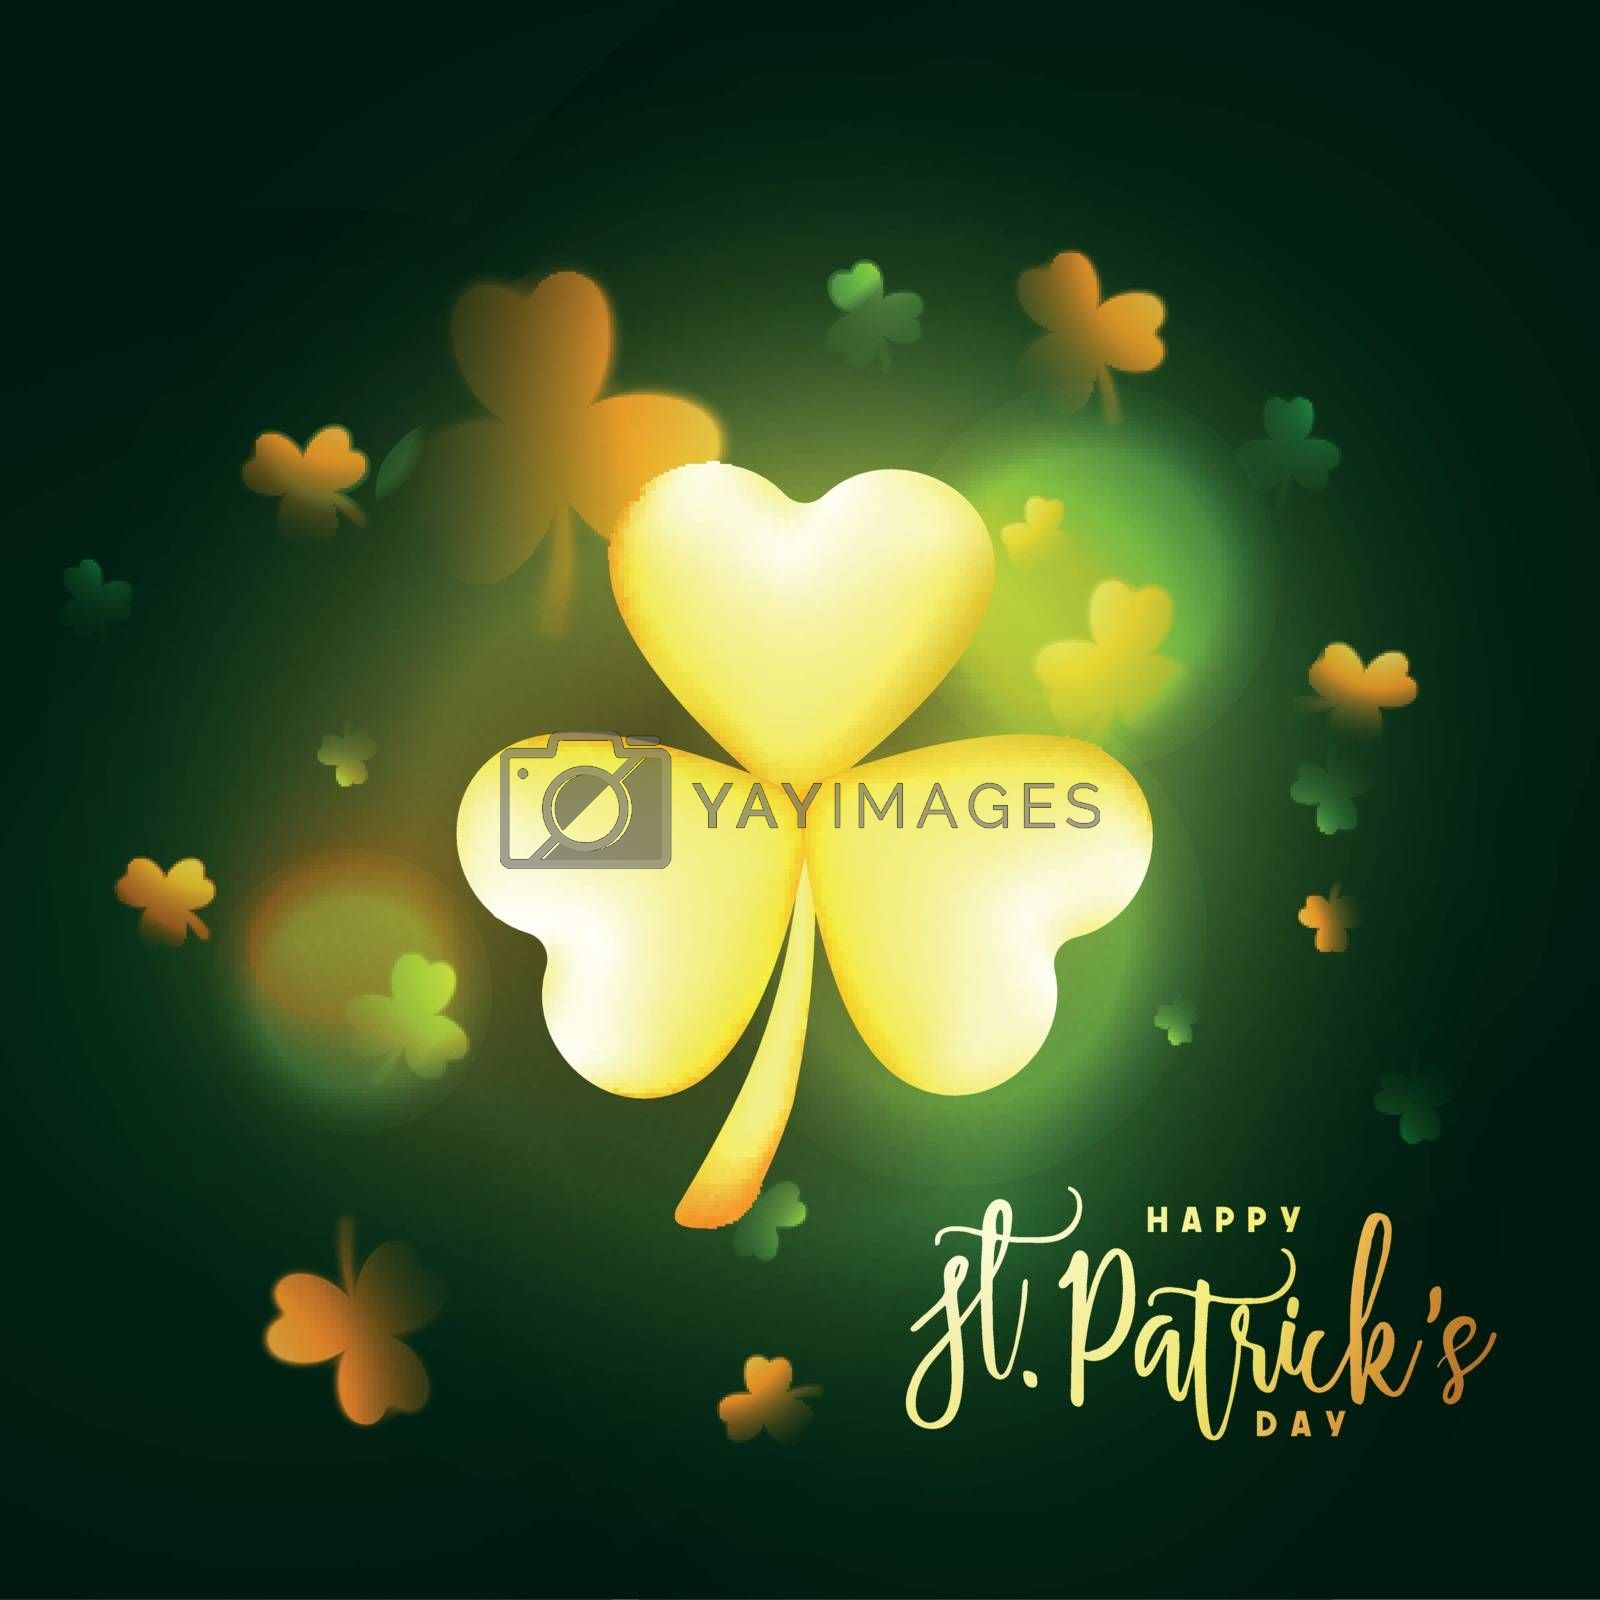 Creative background with Glowing Shamrock Leaves decoration for Happy St. Patrick's Day celebration.